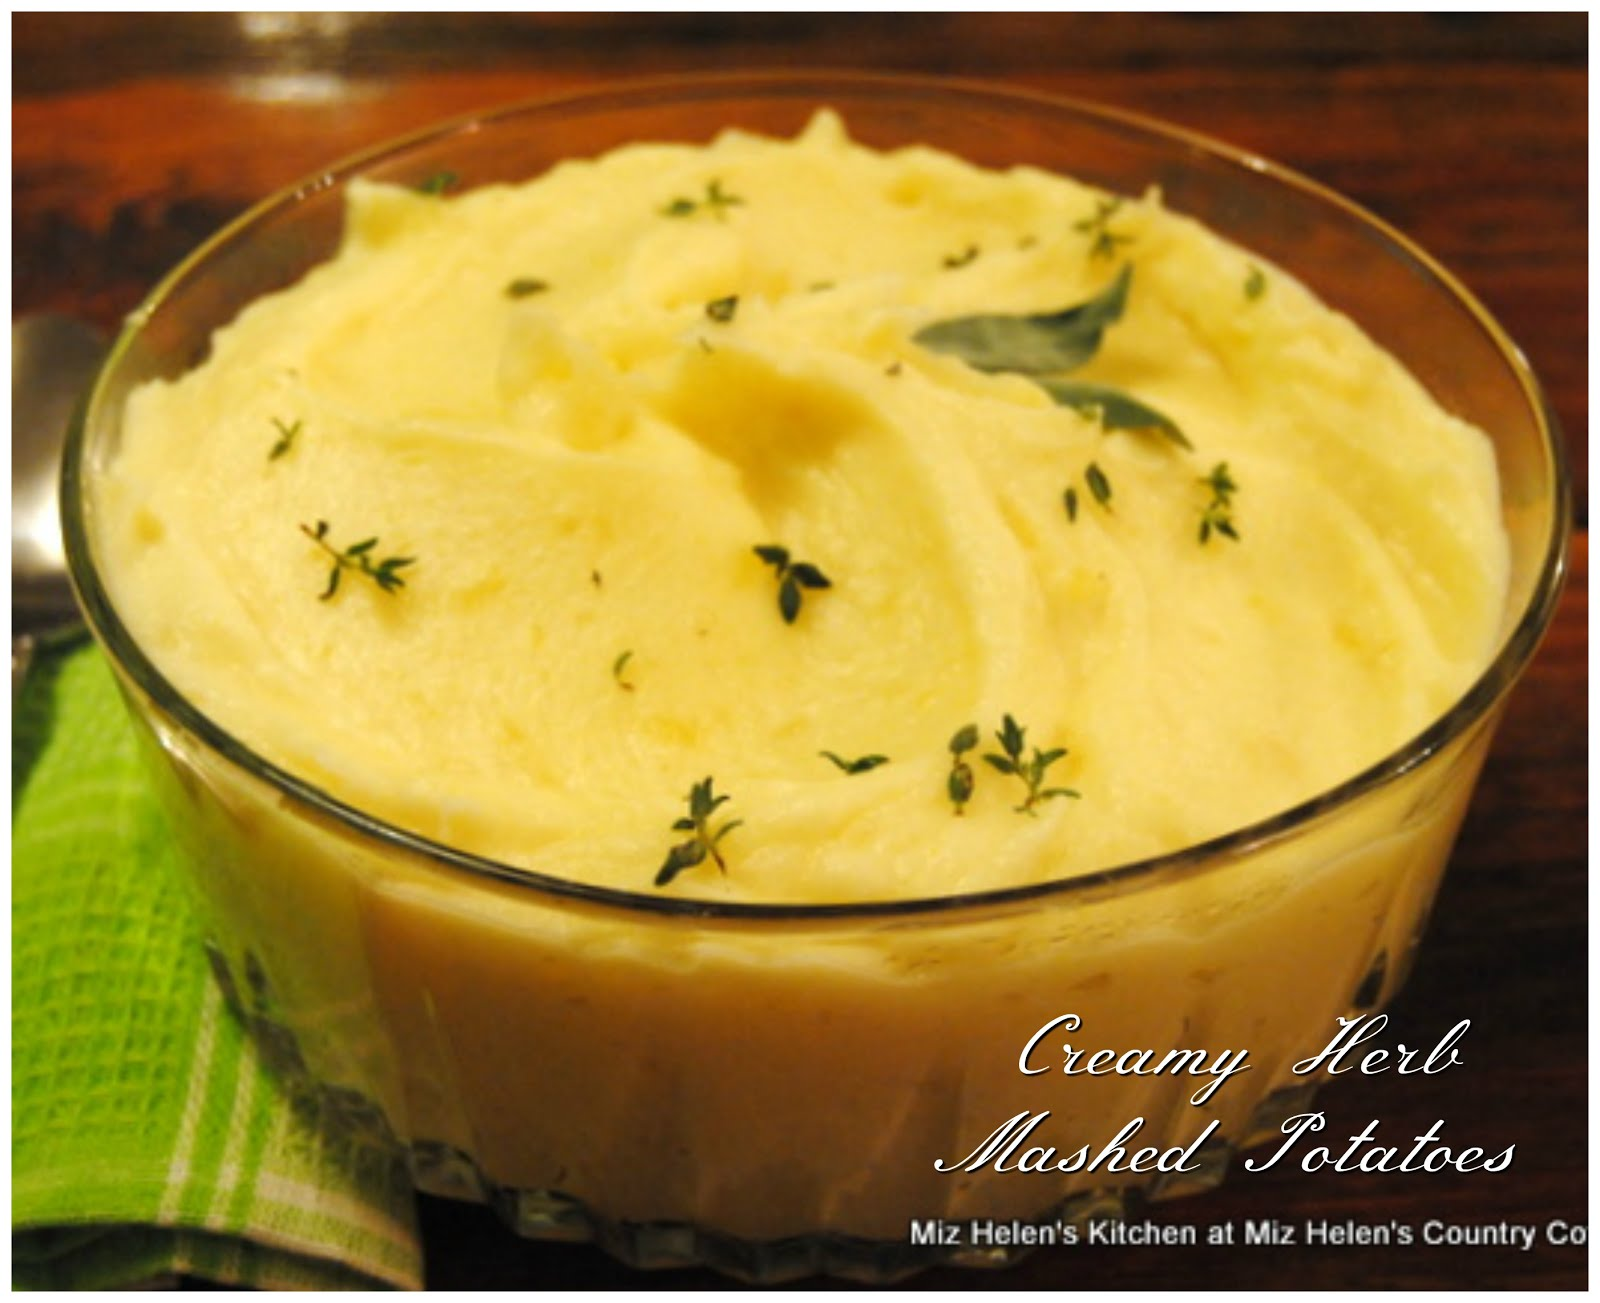 Creamy Herb Mash Potatoes